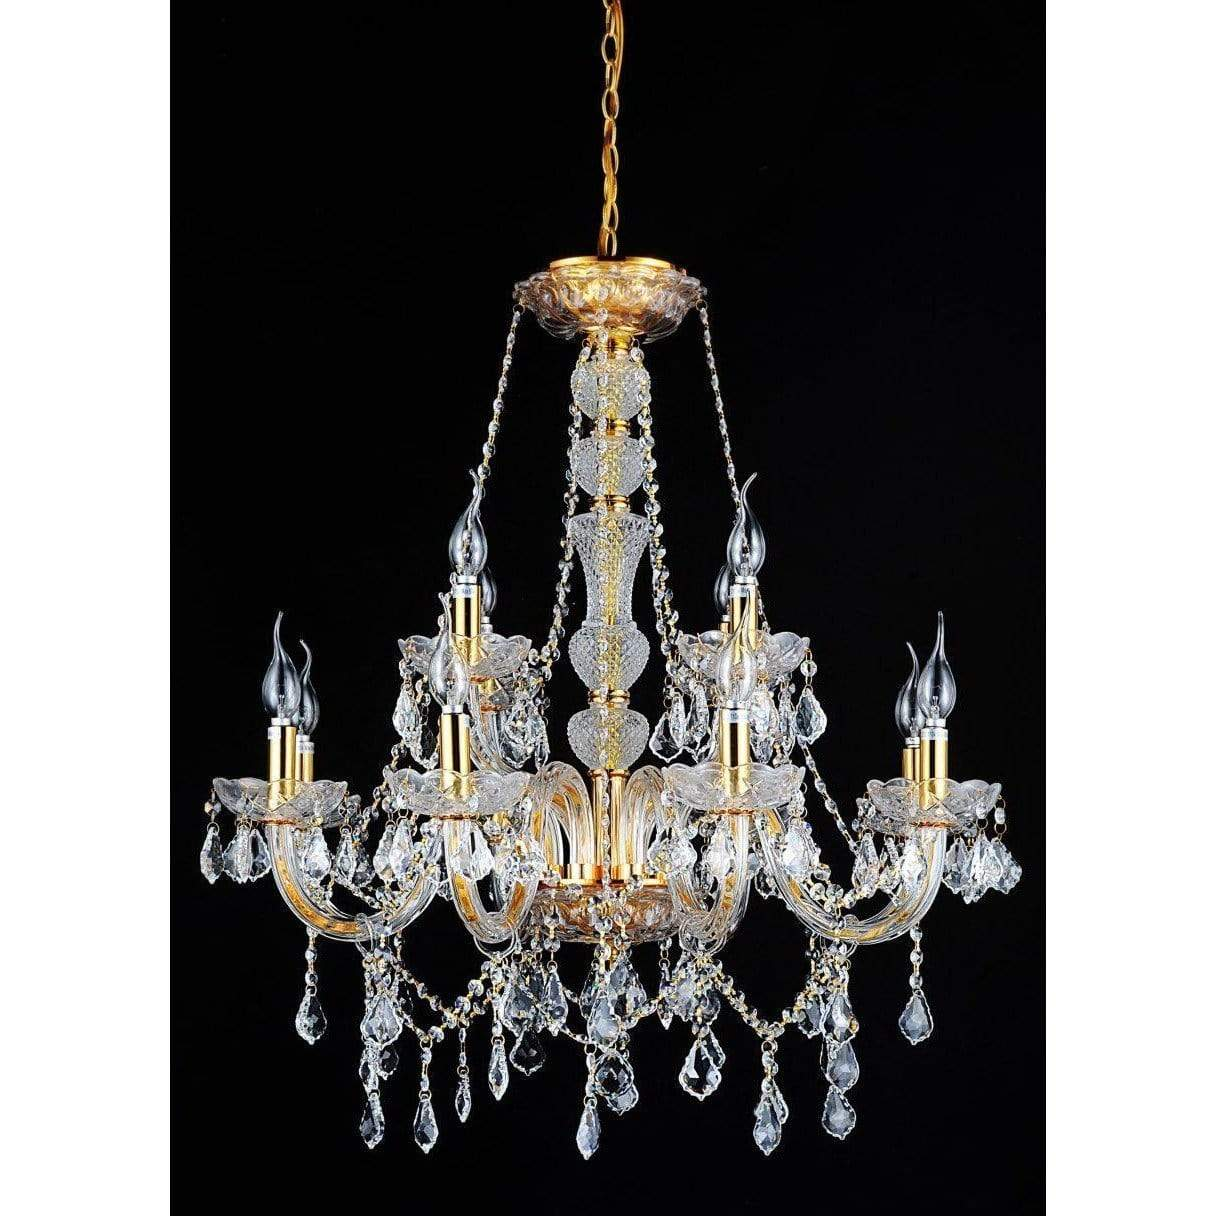 CWI Lighting Chandeliers Gold / K9 Clear Princeton 12 Light Down Chandelier with Gold finish by CWI Lighting 8023P30G